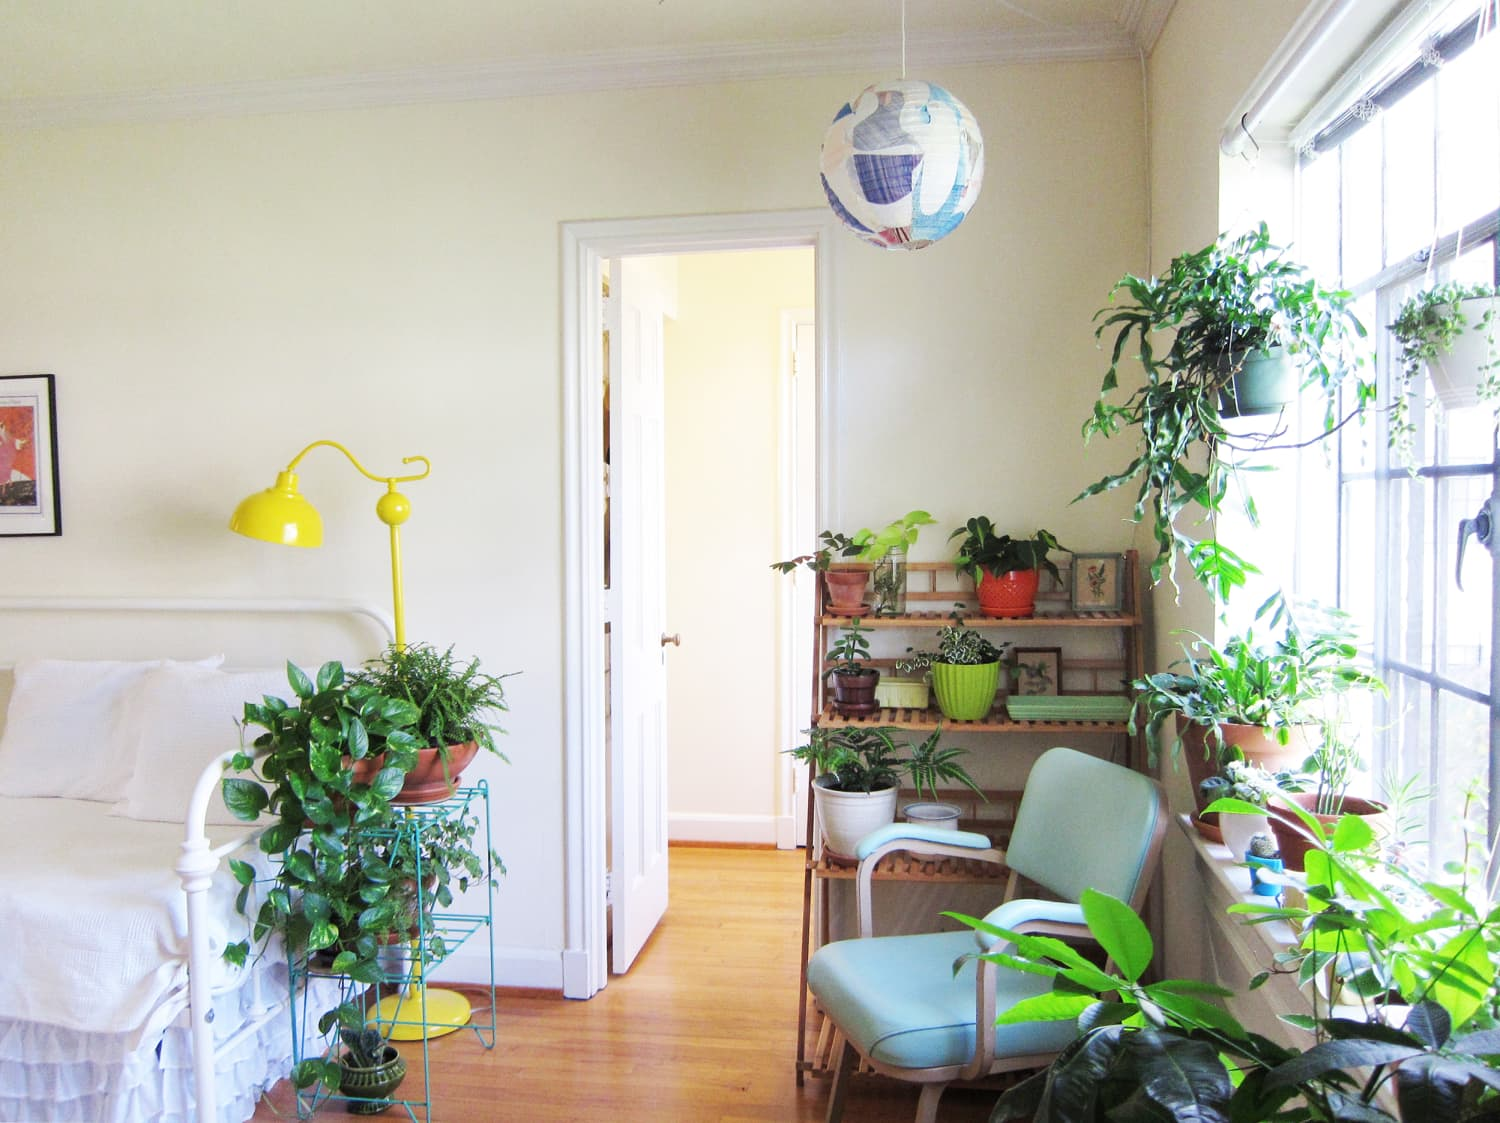 A Small, Sweet & Plant-Filled Apartment in Raleigh